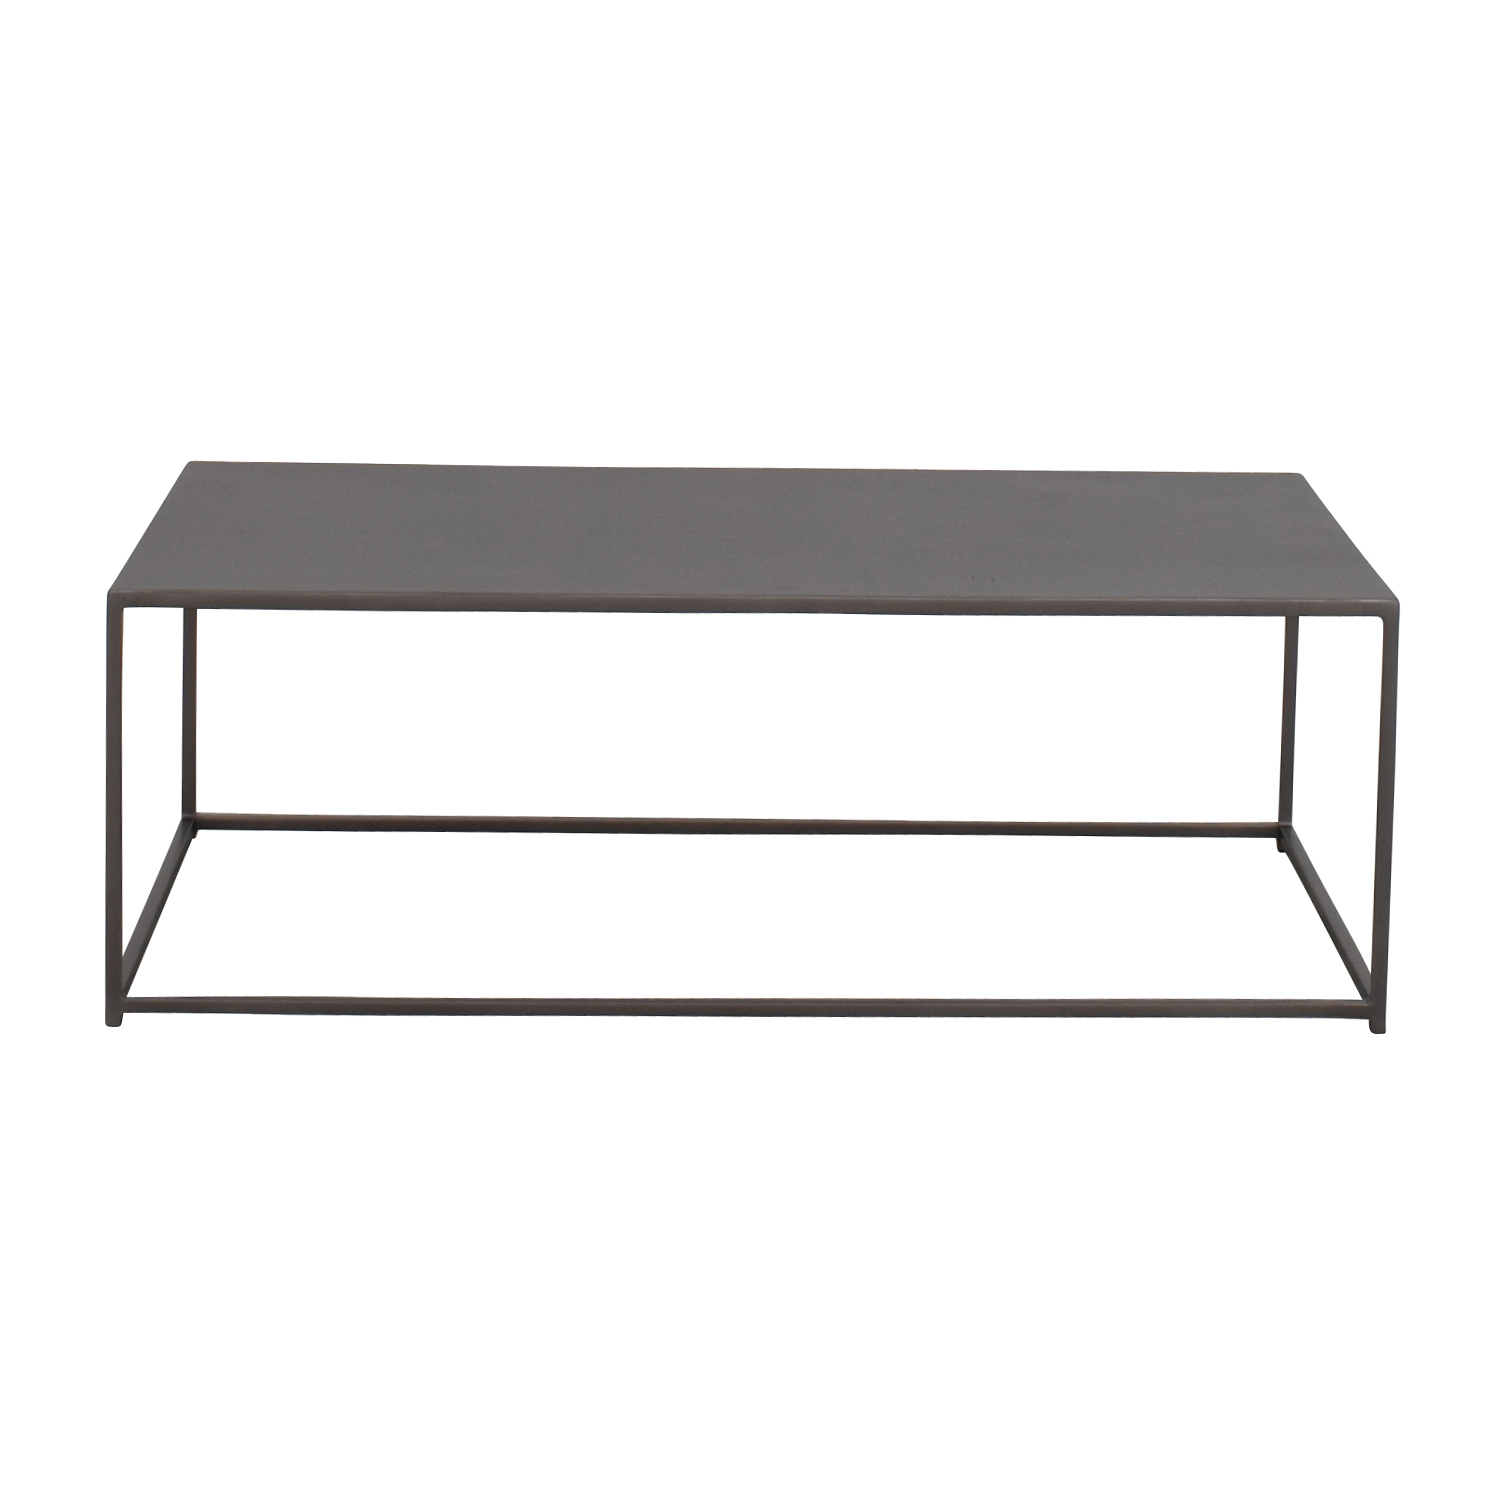 reputable site 4491c 46212 51% OFF - CB2 CB2 Mill Industrial Iron Coffee Table / Tables